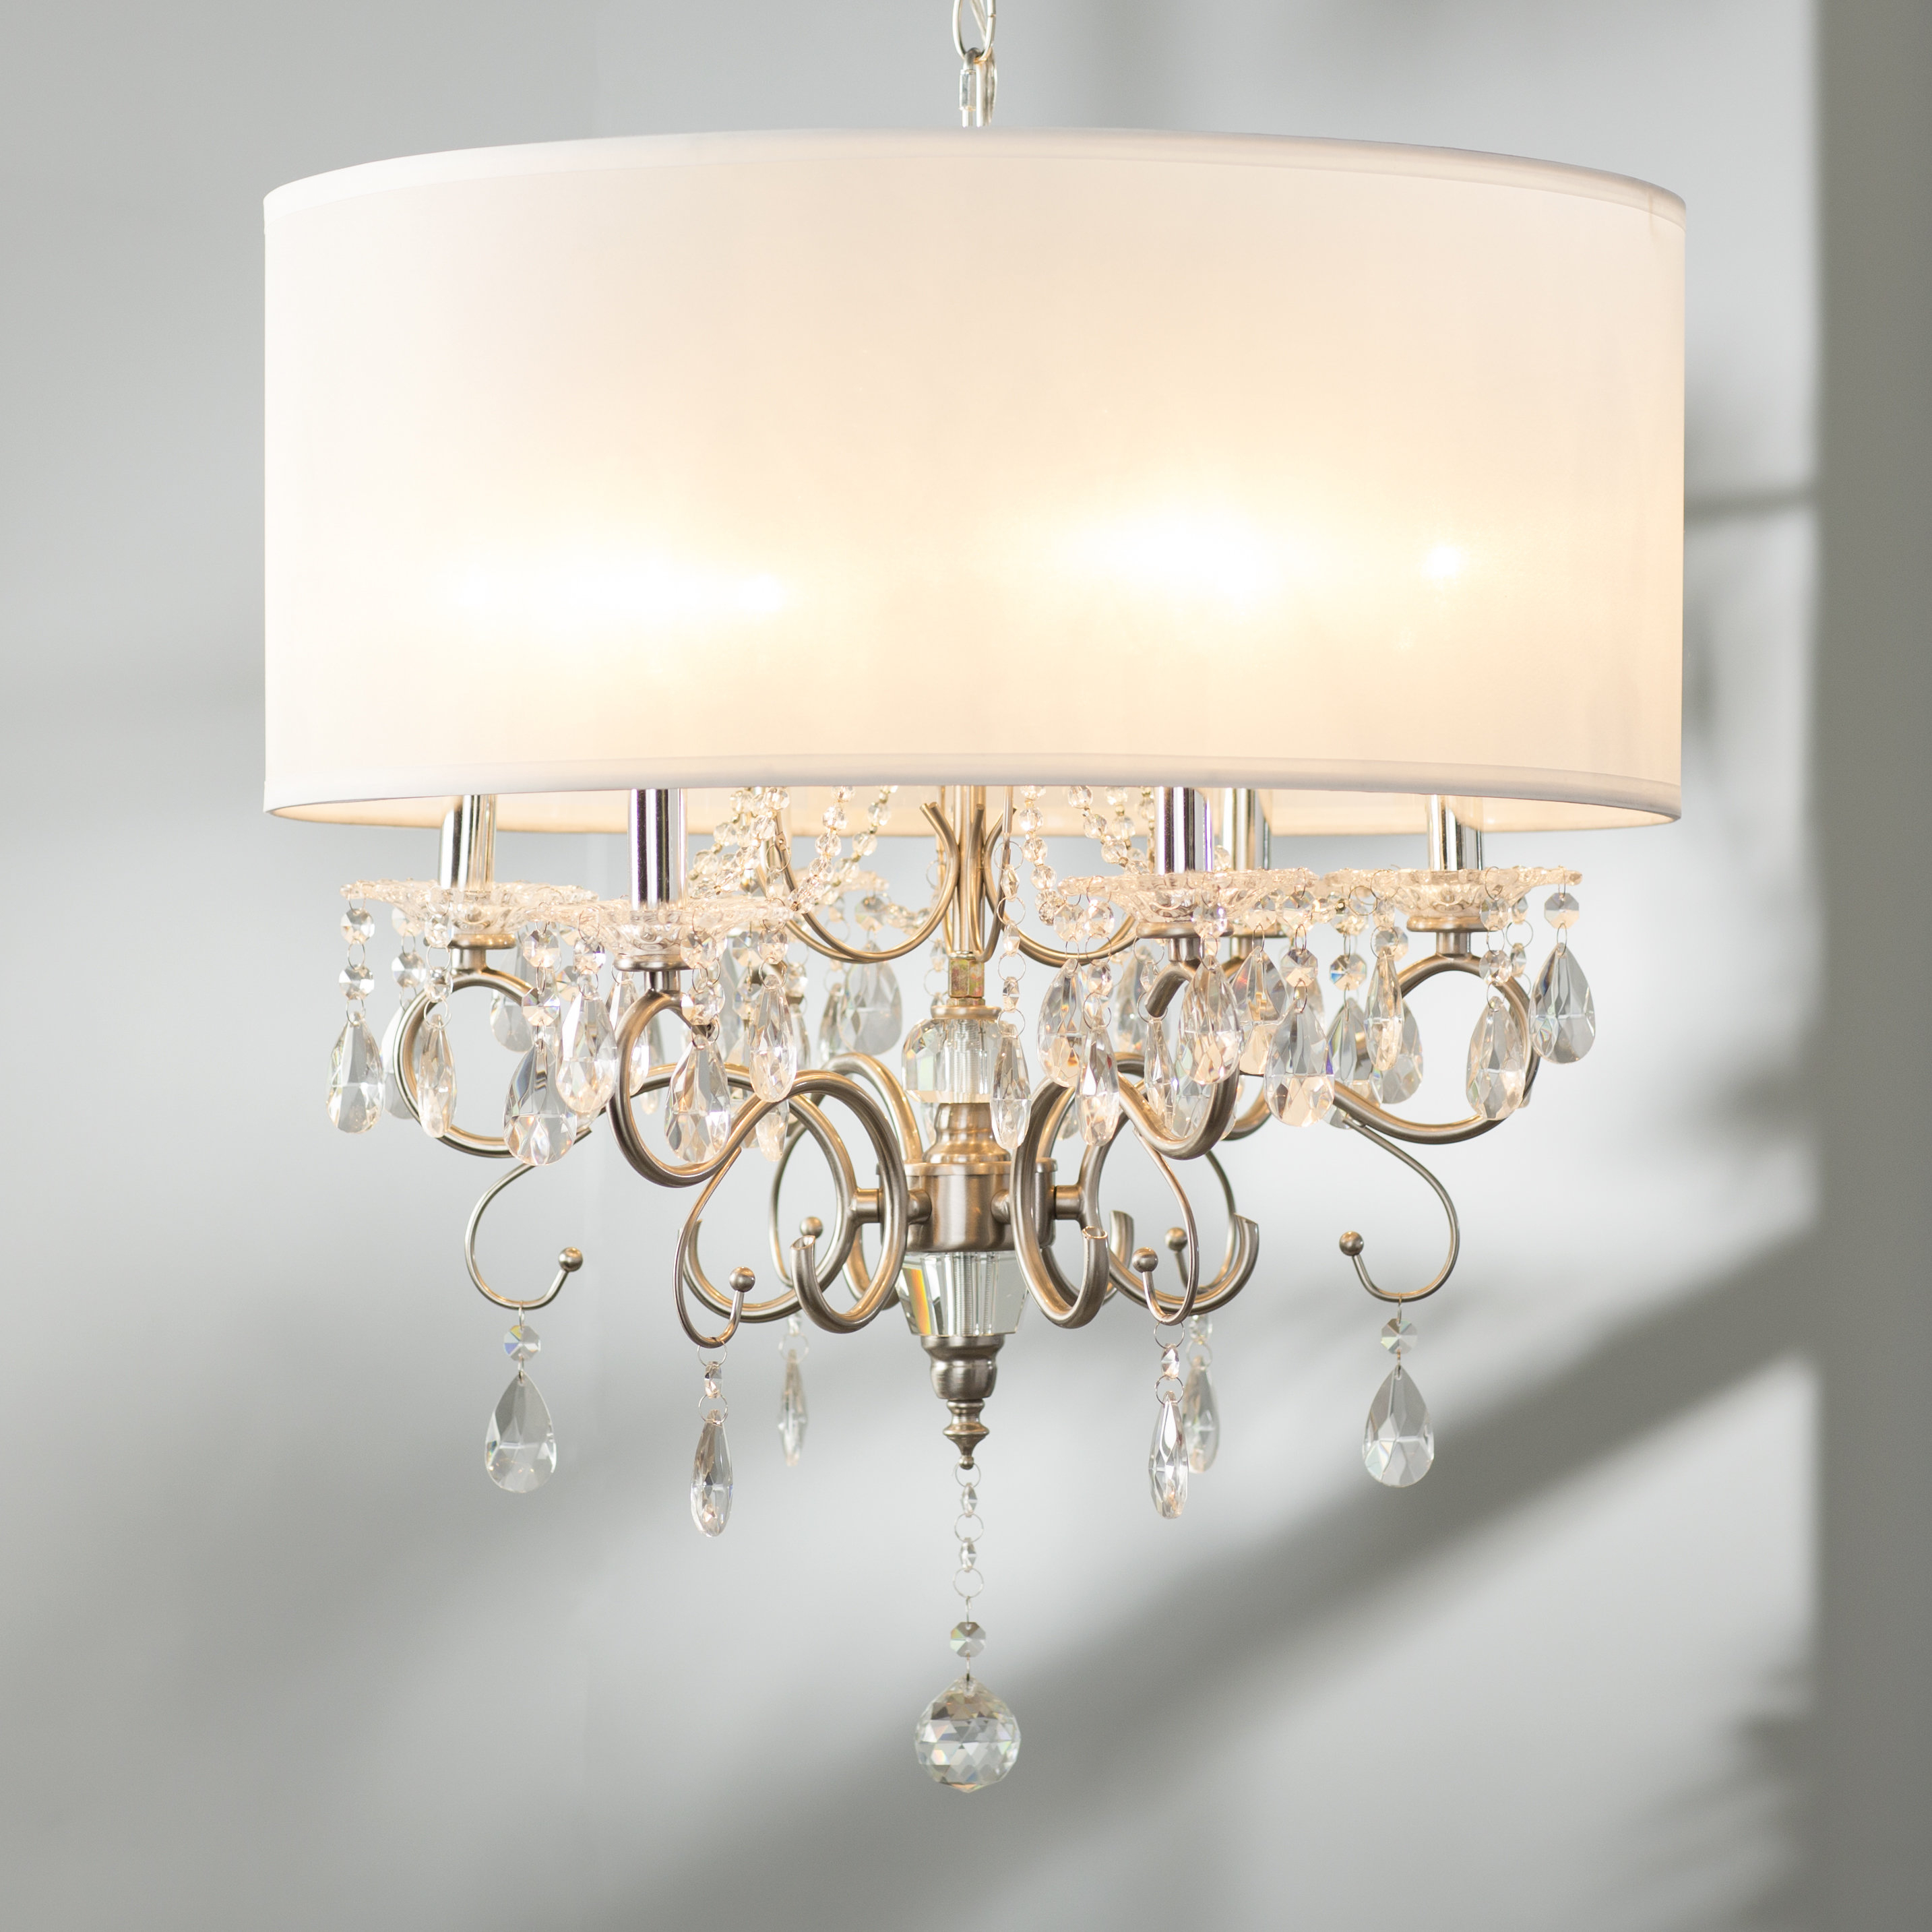 Hamza 6 Light Chandelier | Wayfair With Hamza 6 Light Candle Style Chandeliers (View 14 of 30)